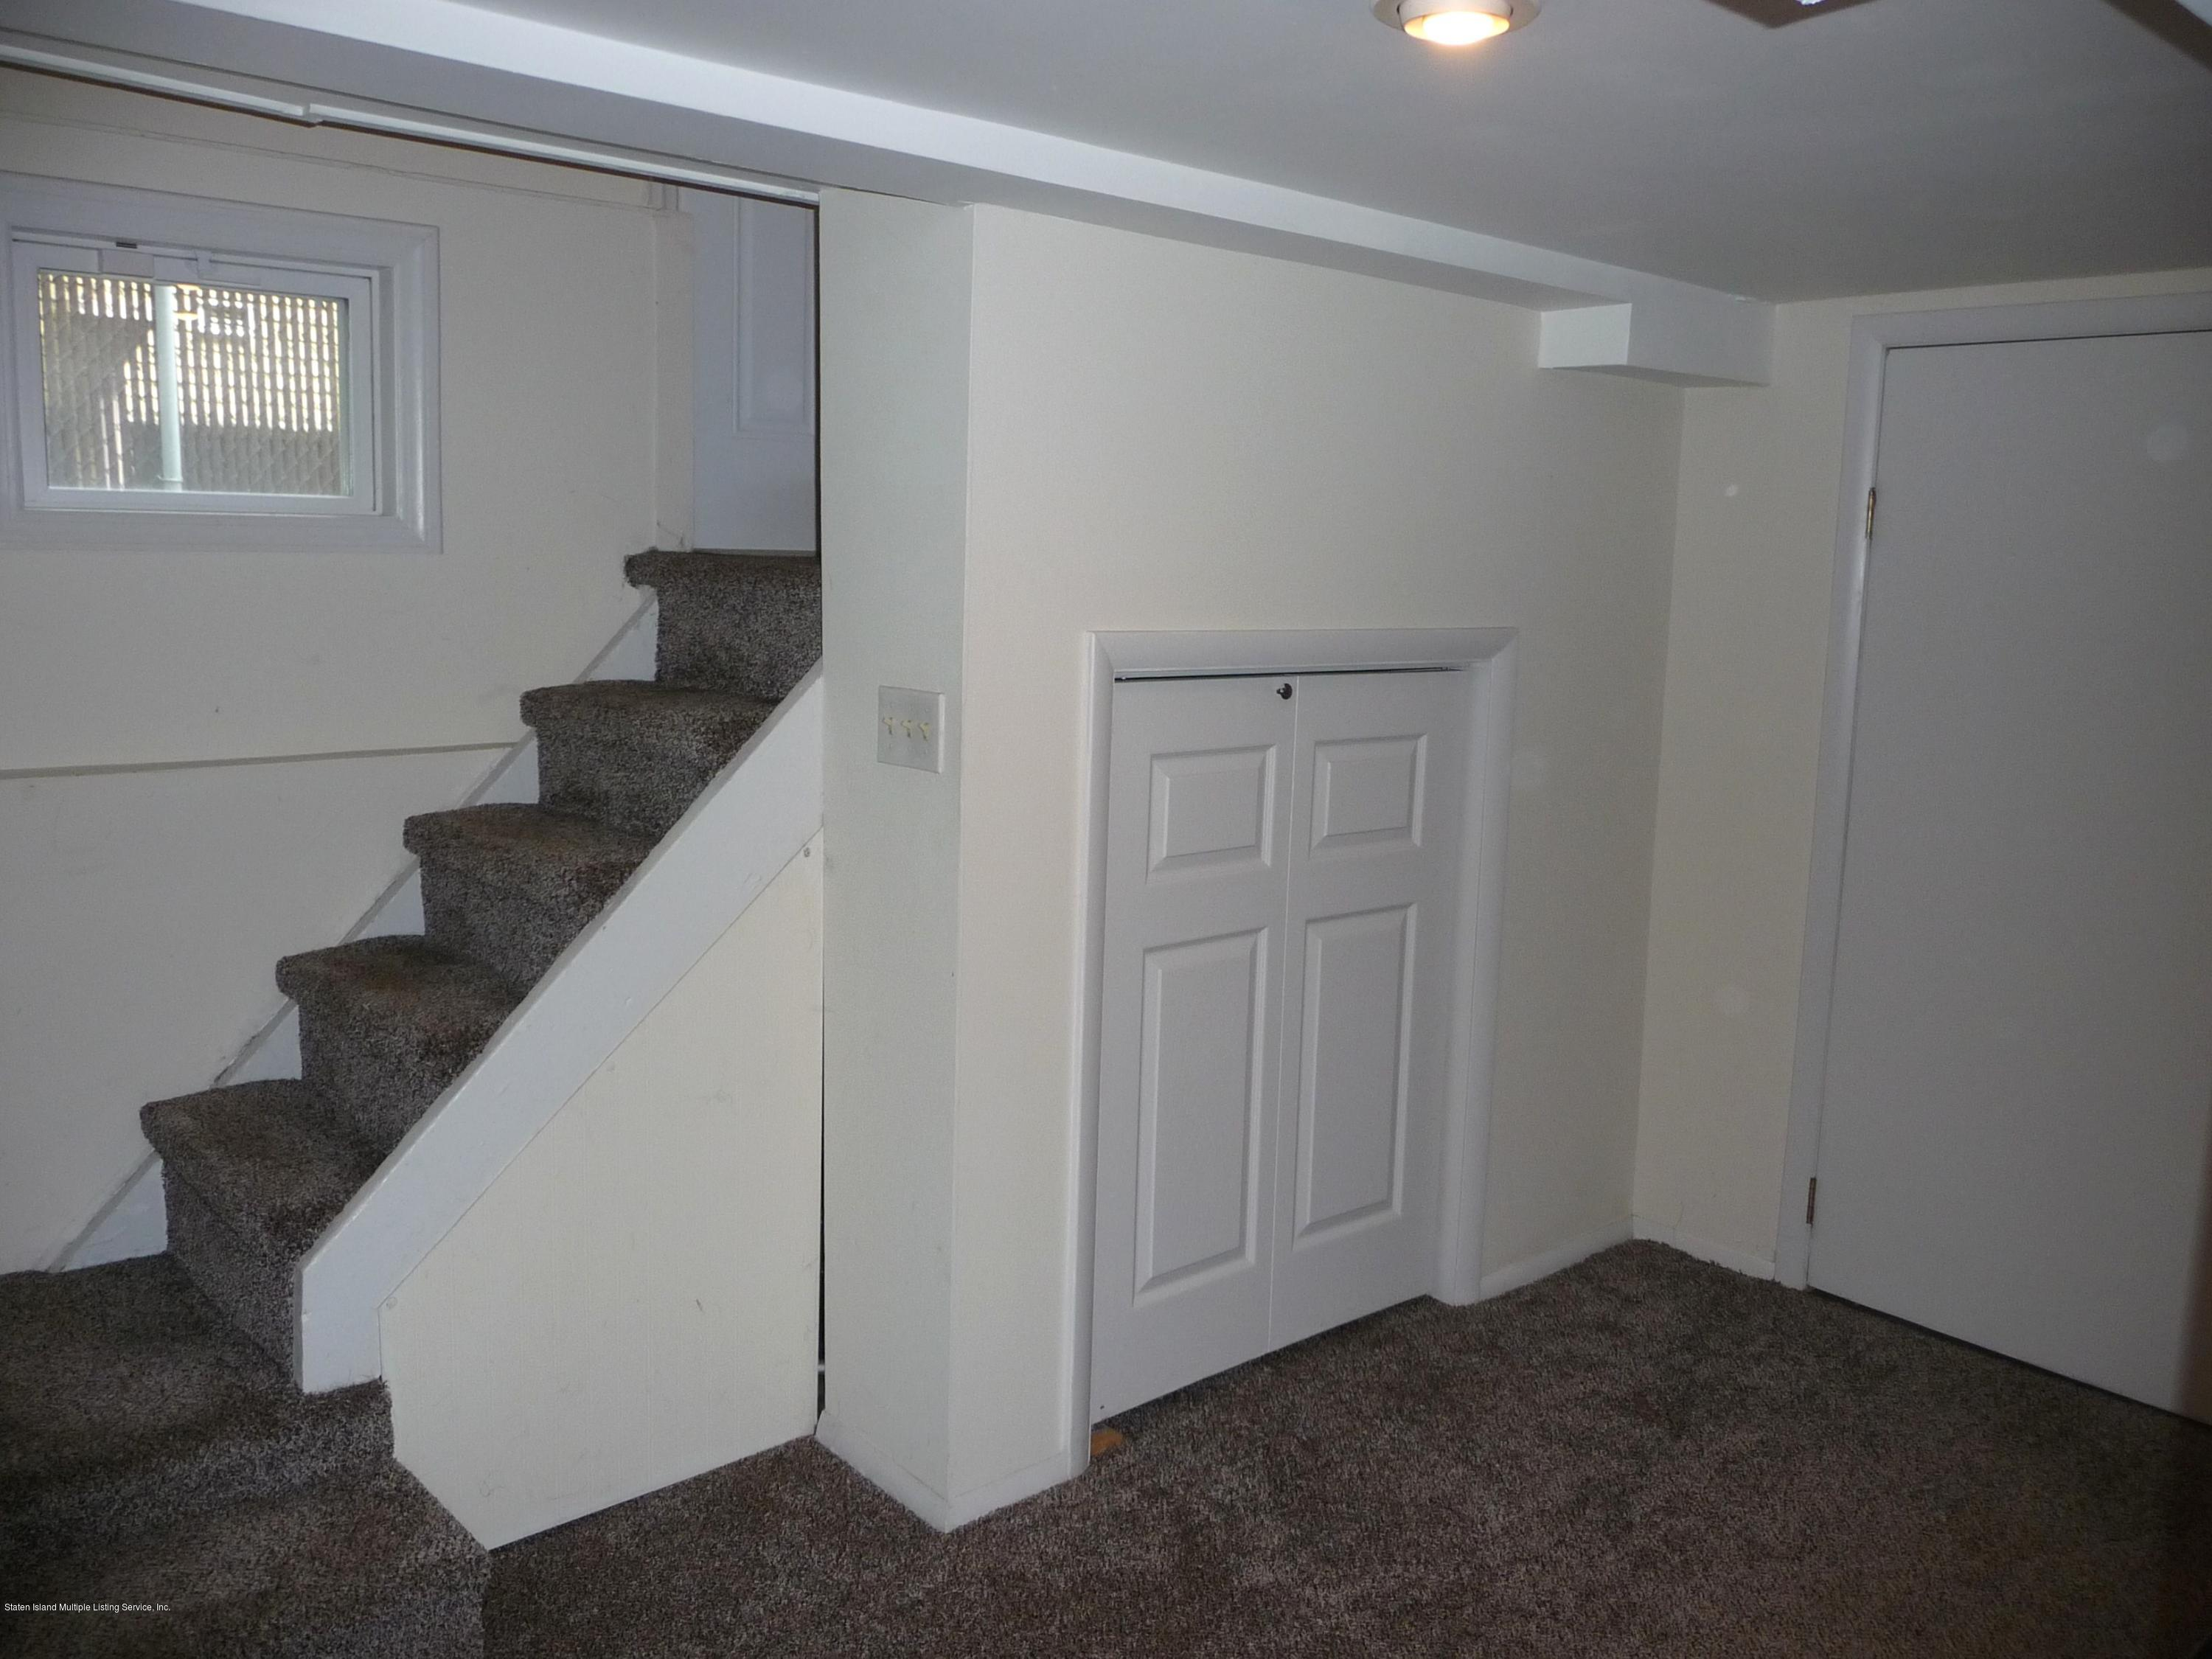 Single Family - Detached 77 Todt Hill Road  Staten Island, NY 10314, MLS-1129718-42